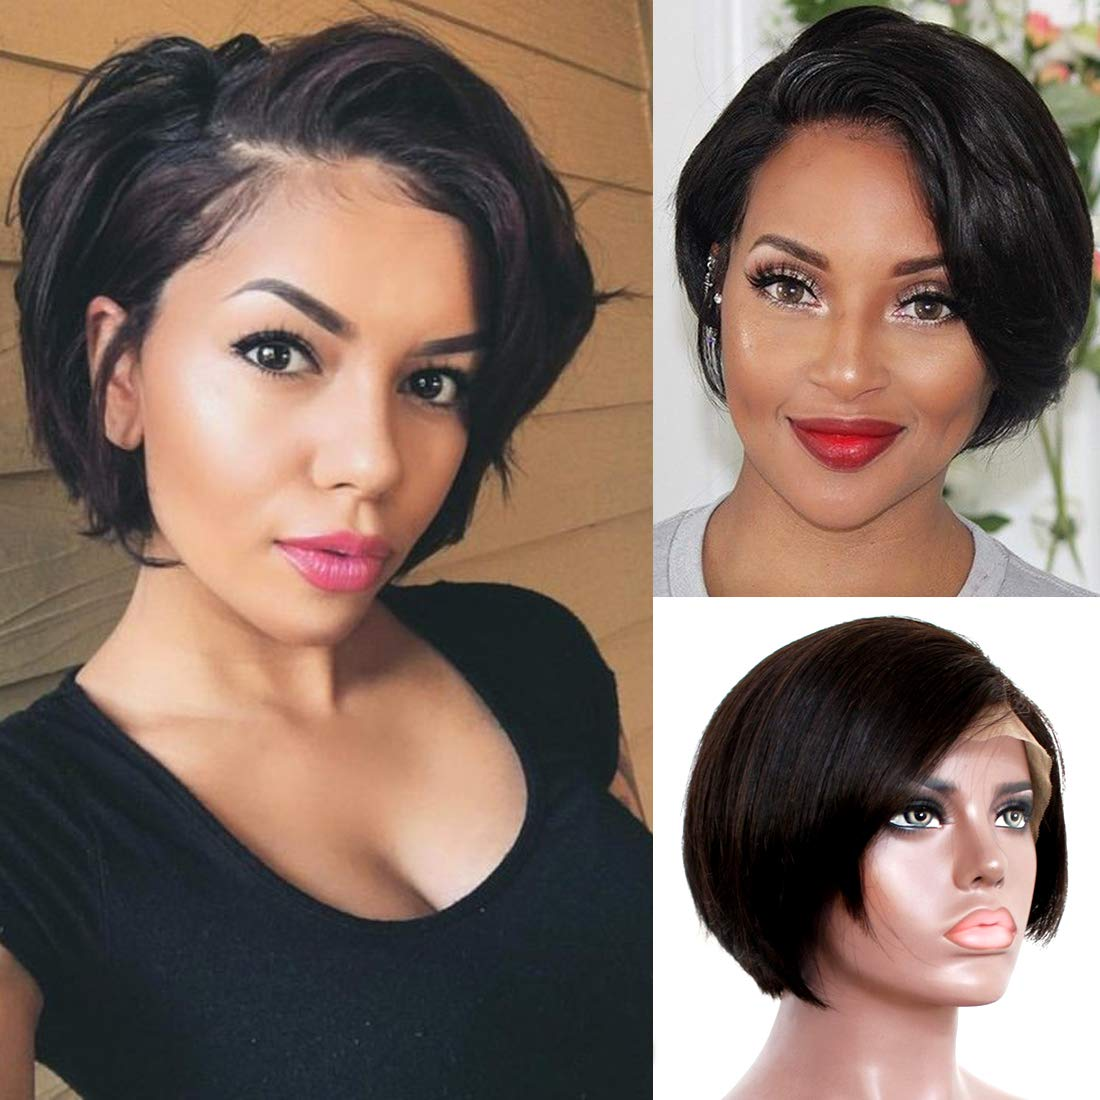 Liwihas 11x11 Lace front Wigs Human Hair Pixie Cut Wigs Short Bob Wigs for  Black Women 11% Density Brazilian Virgin Human Hair with Pre Plucked